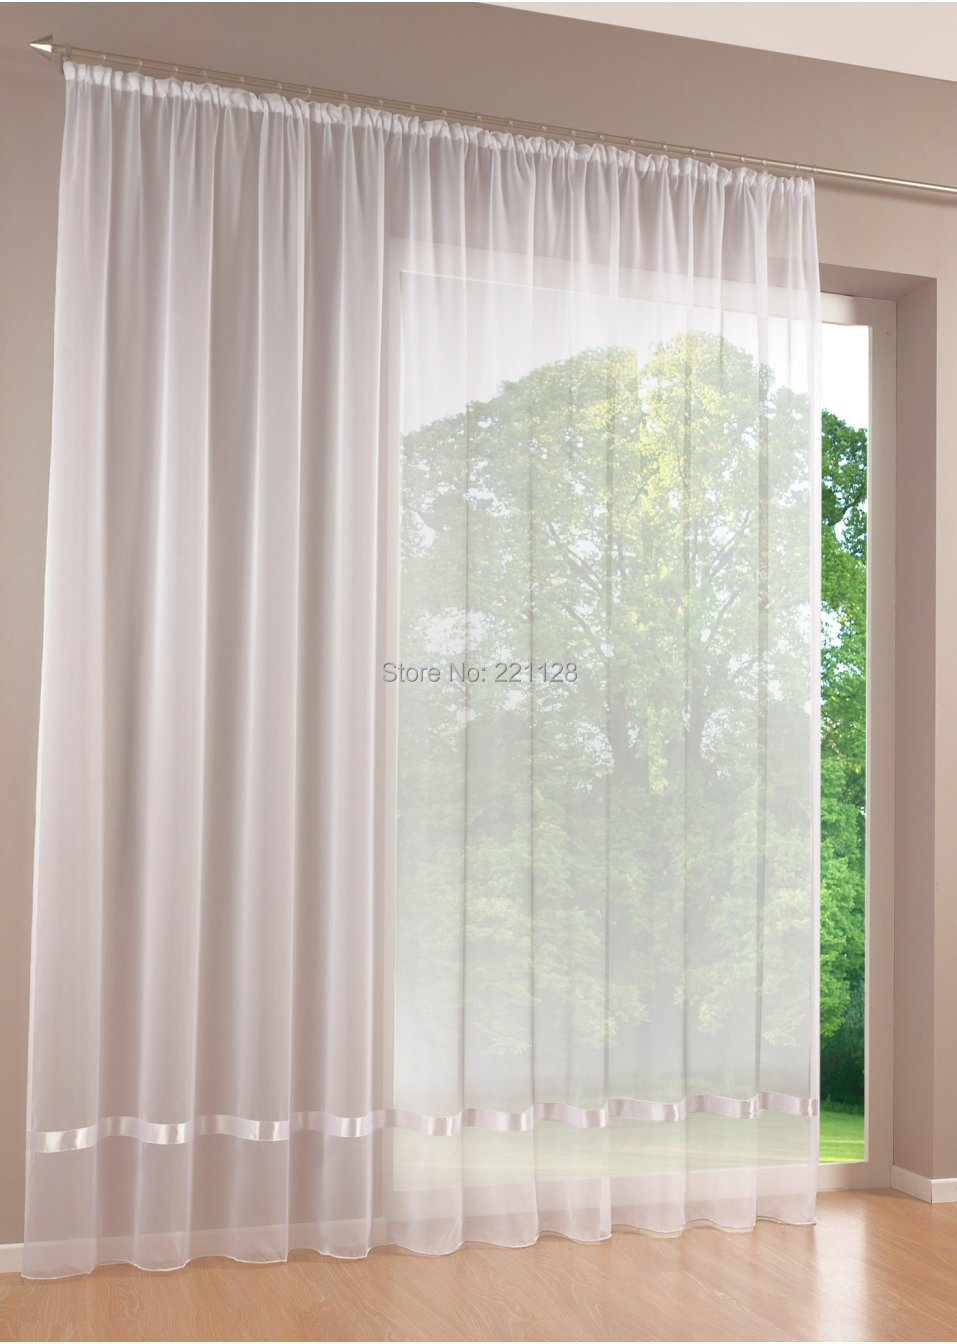 Price by Piece Quality white all-match window screens curtain,tulle sheer curtian,solid voile curtain with ribbon,free shipping(China (Mainland))